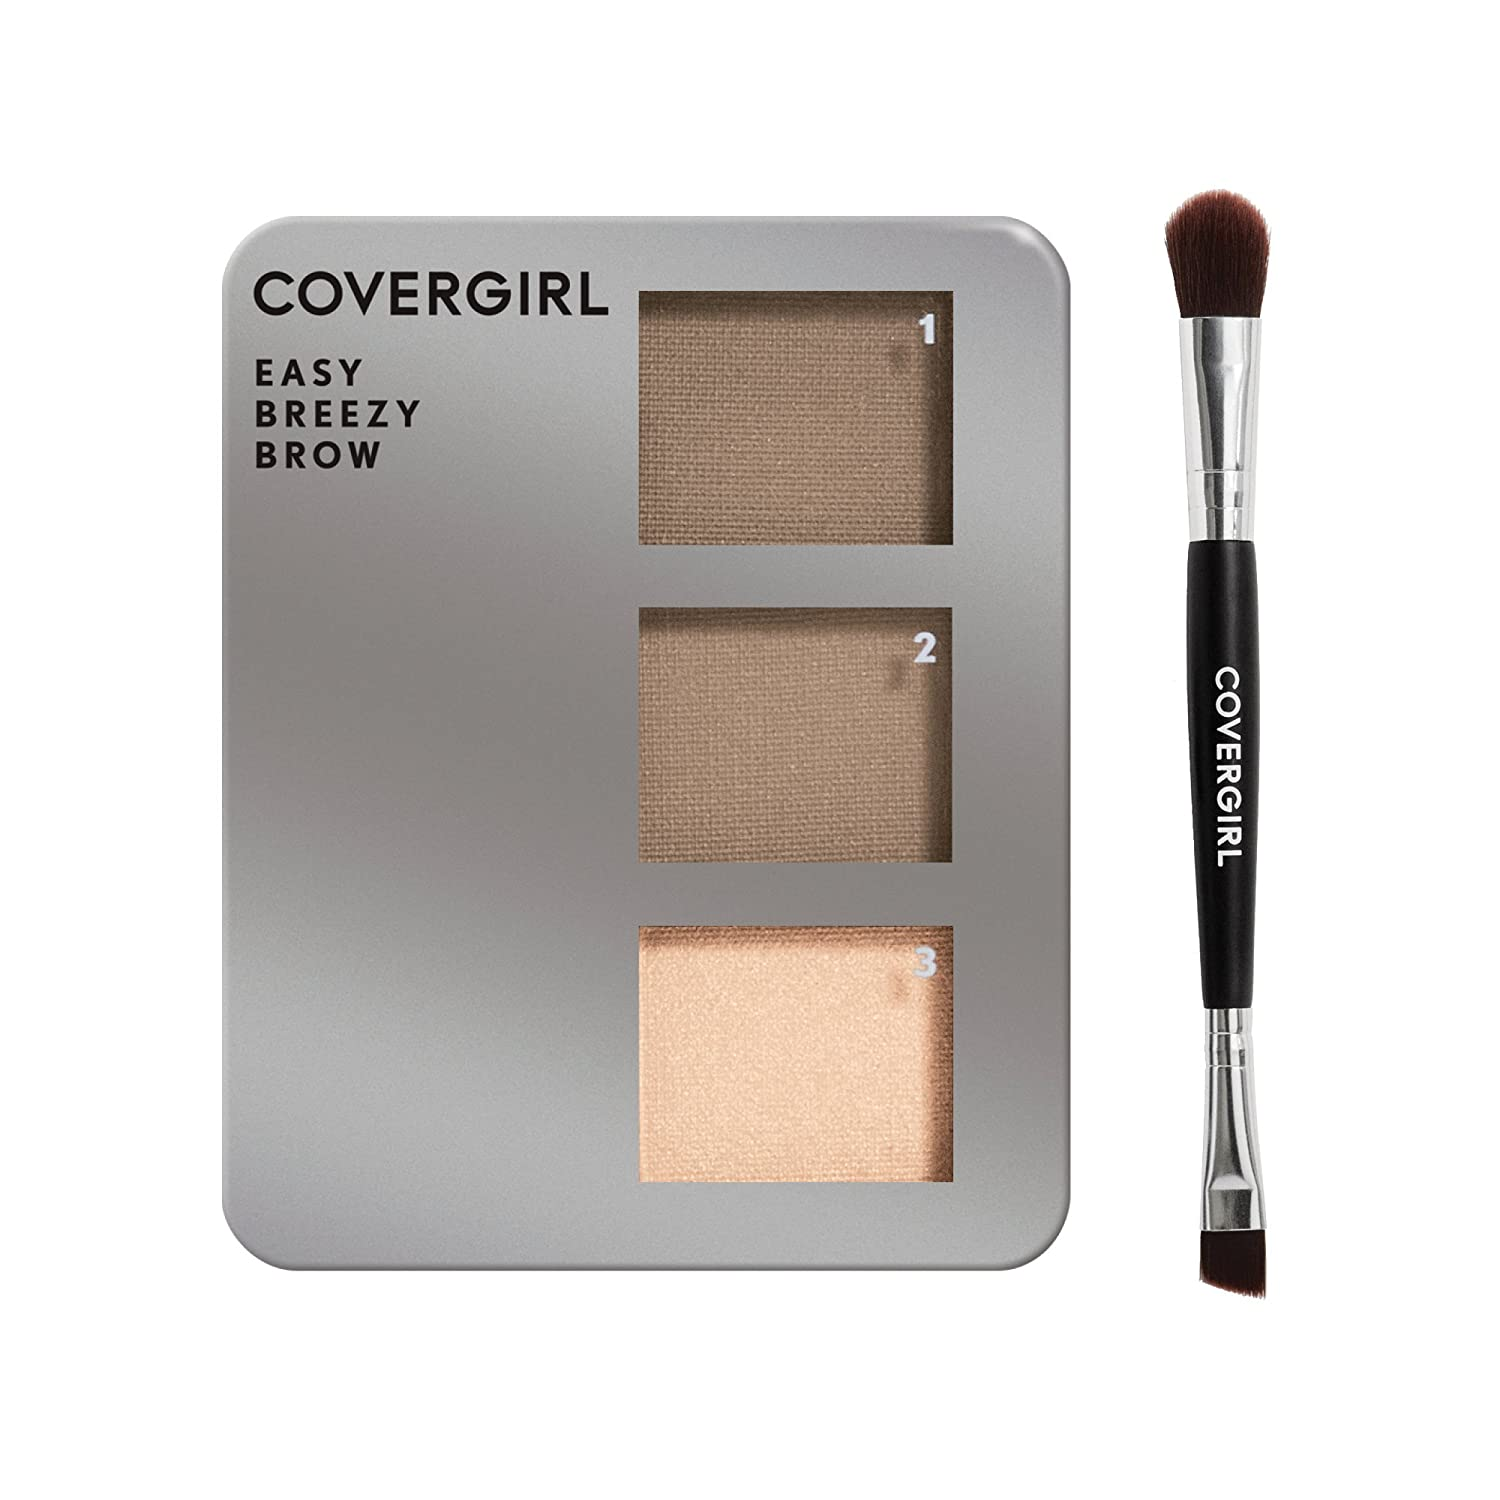 COVERGIRL - Easy Breezy Brow Powder Kit - Packaging May Vary Coty